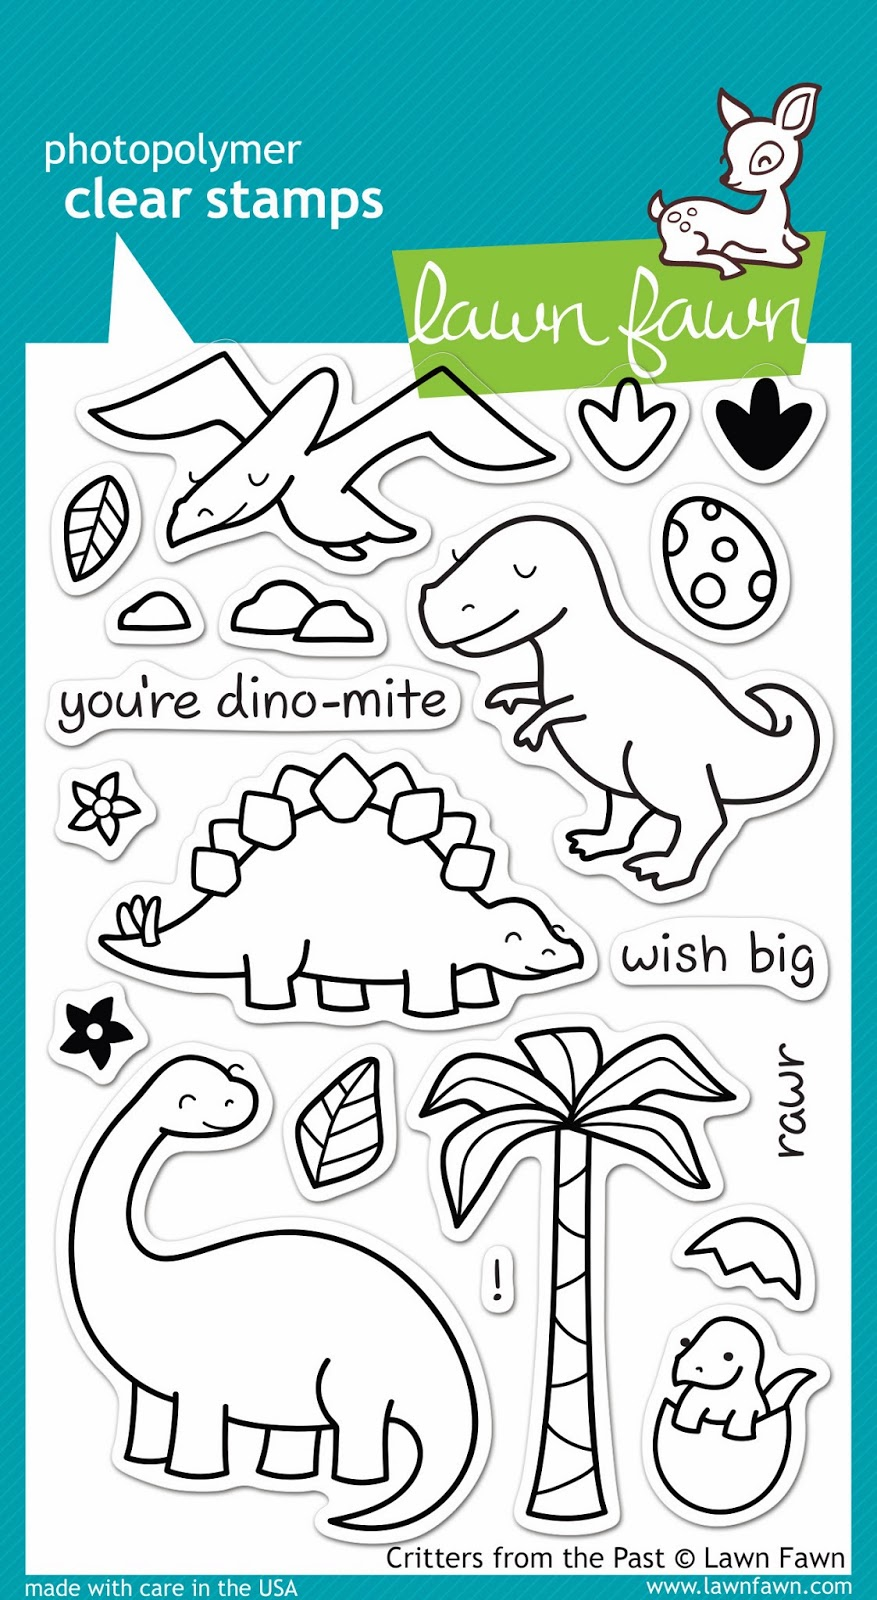 http://www.lawnfawn.com/collections/new-products/products/critters-from-the-past